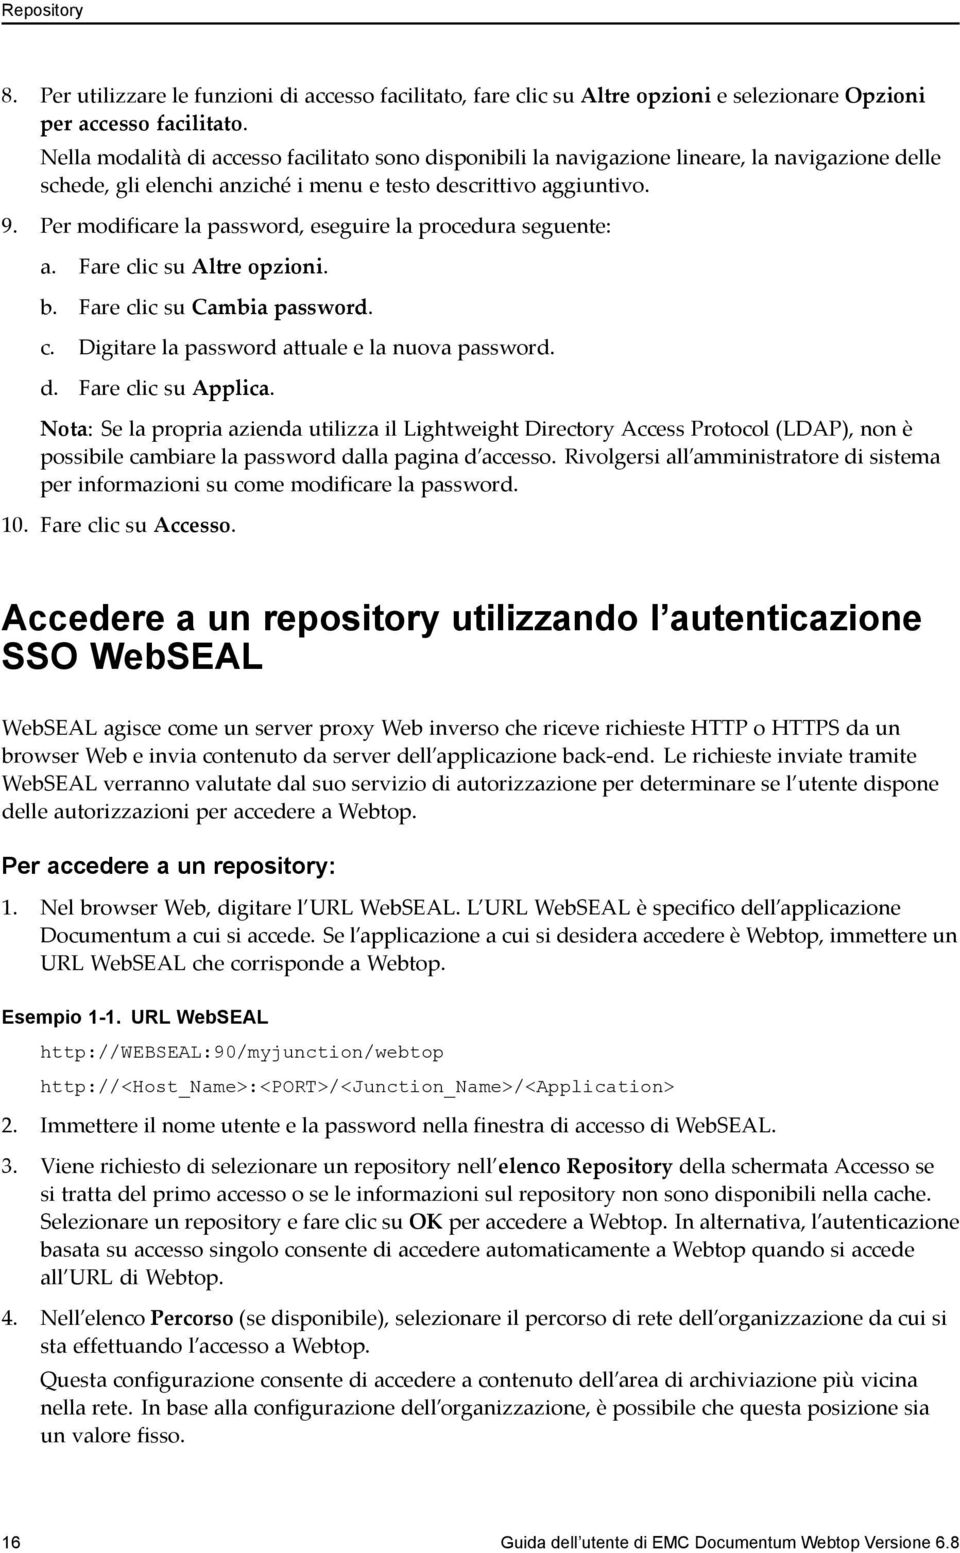 Per modificare la password, eseguire la procedura seguente: a. Fare clic su Altre opzioni. b. Fare clic su Cambia password. c. Digitare la password attuale e la nuova password. d.